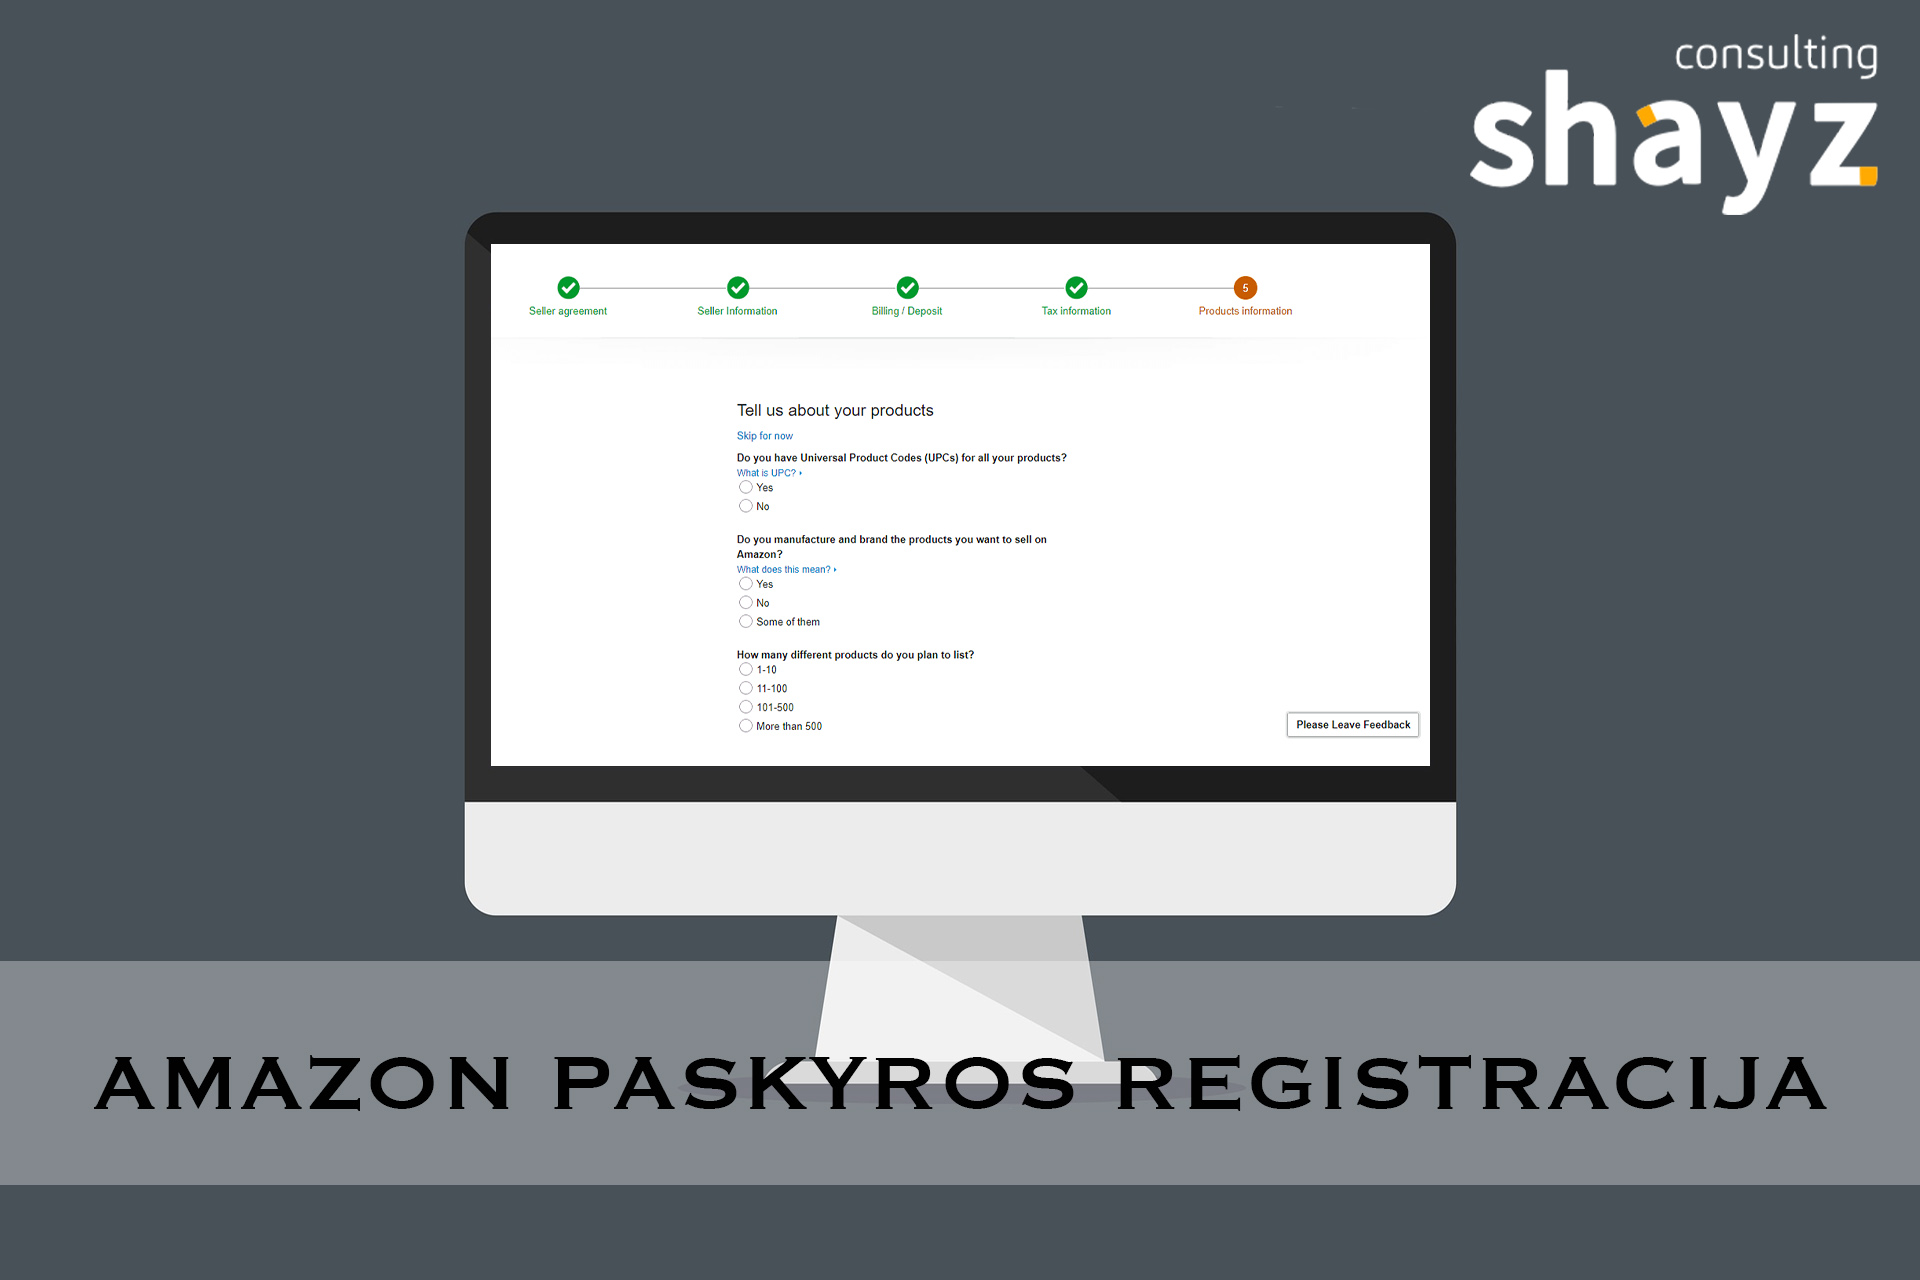 Amazon Paskyros Registracija